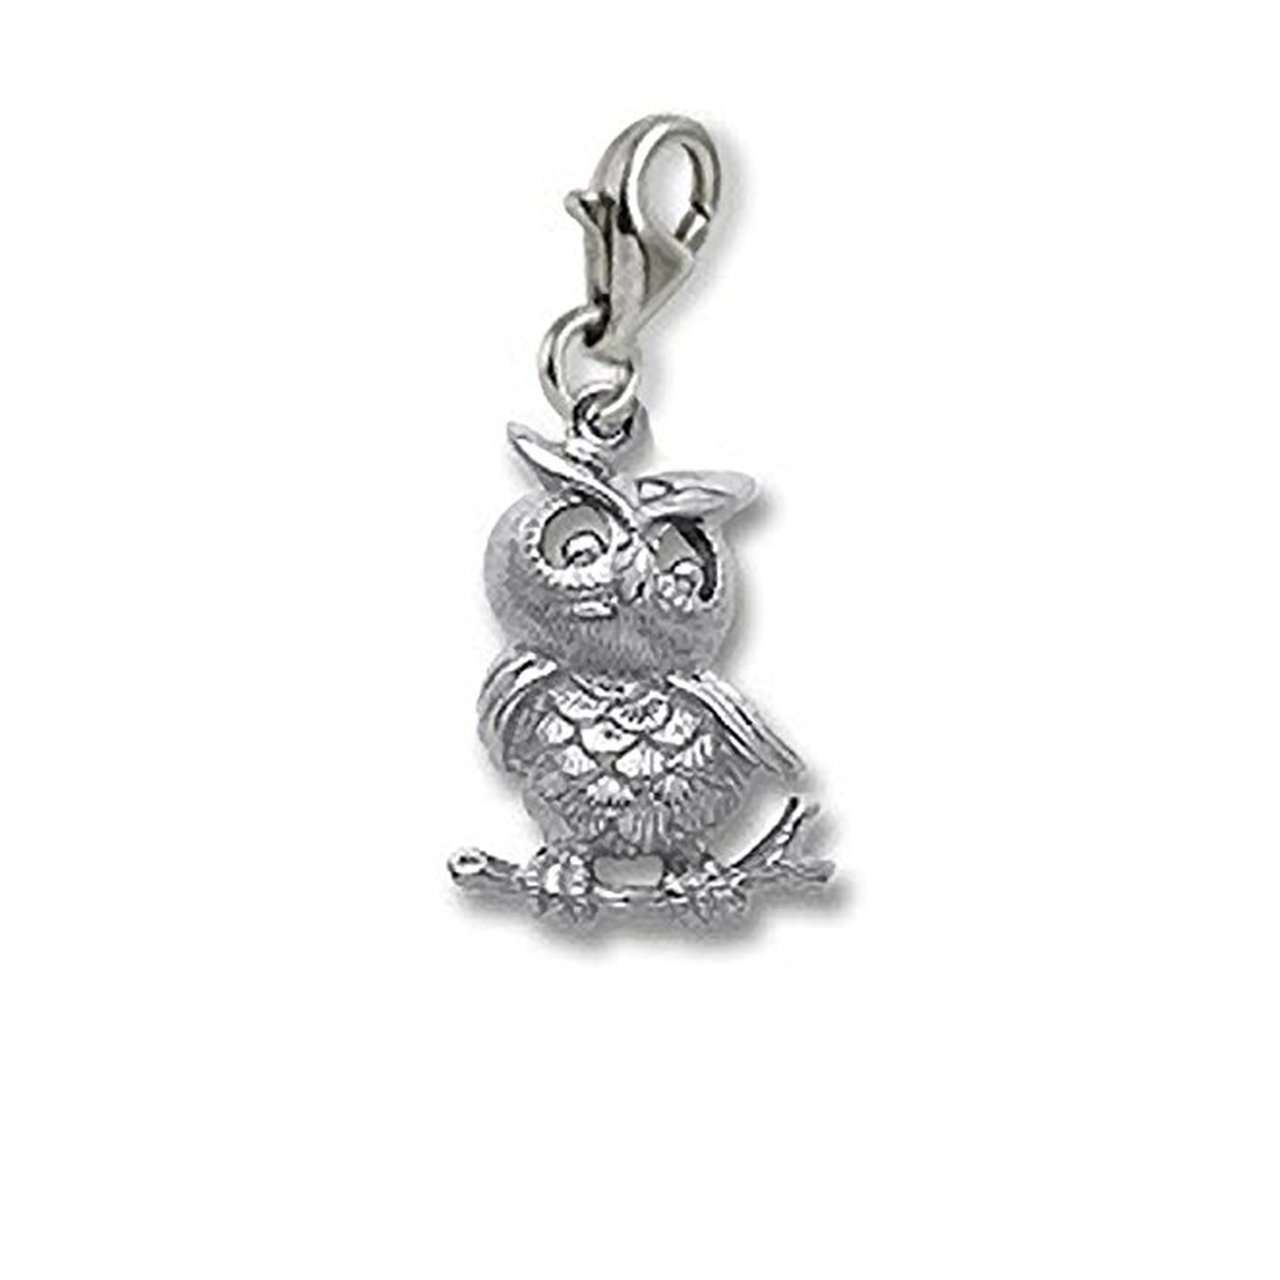 Owl Charm With Lobster Claw Clasp Charms for Bracelets and Necklaces